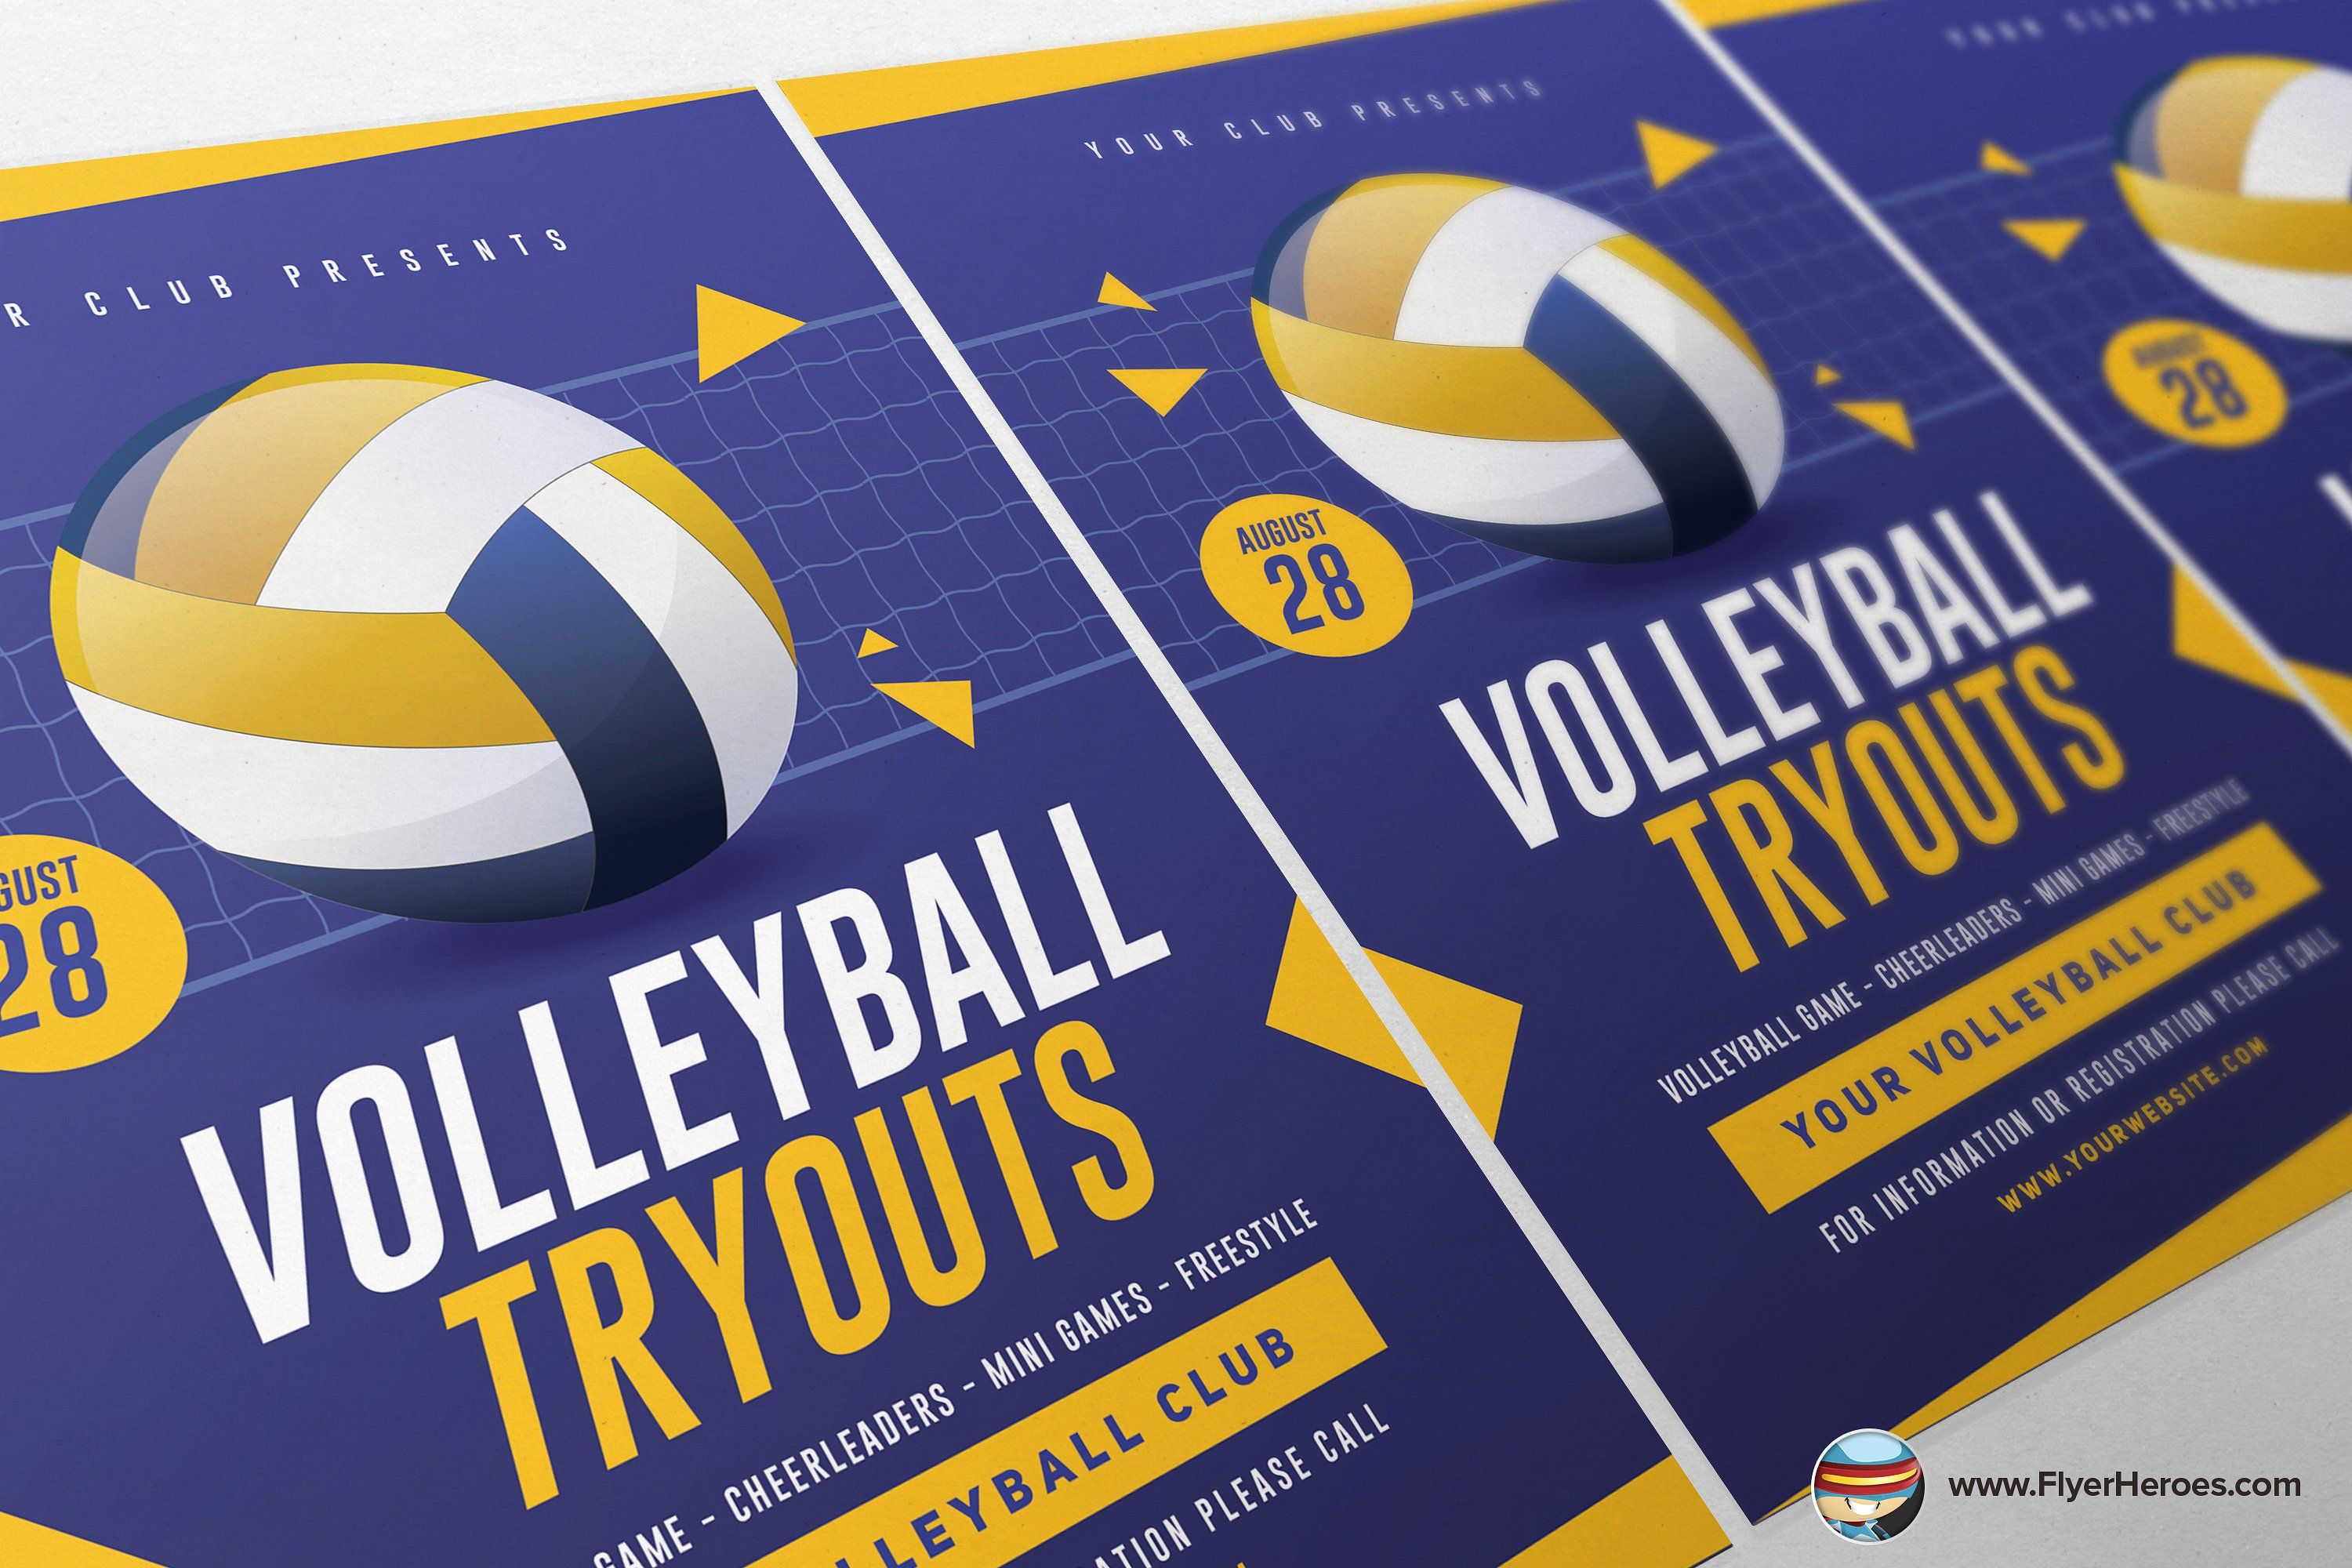 Volleyball Tryouts Flyer Template Information General Tryouts Volleyball Flyer Template Flyer Flyer Design Templates